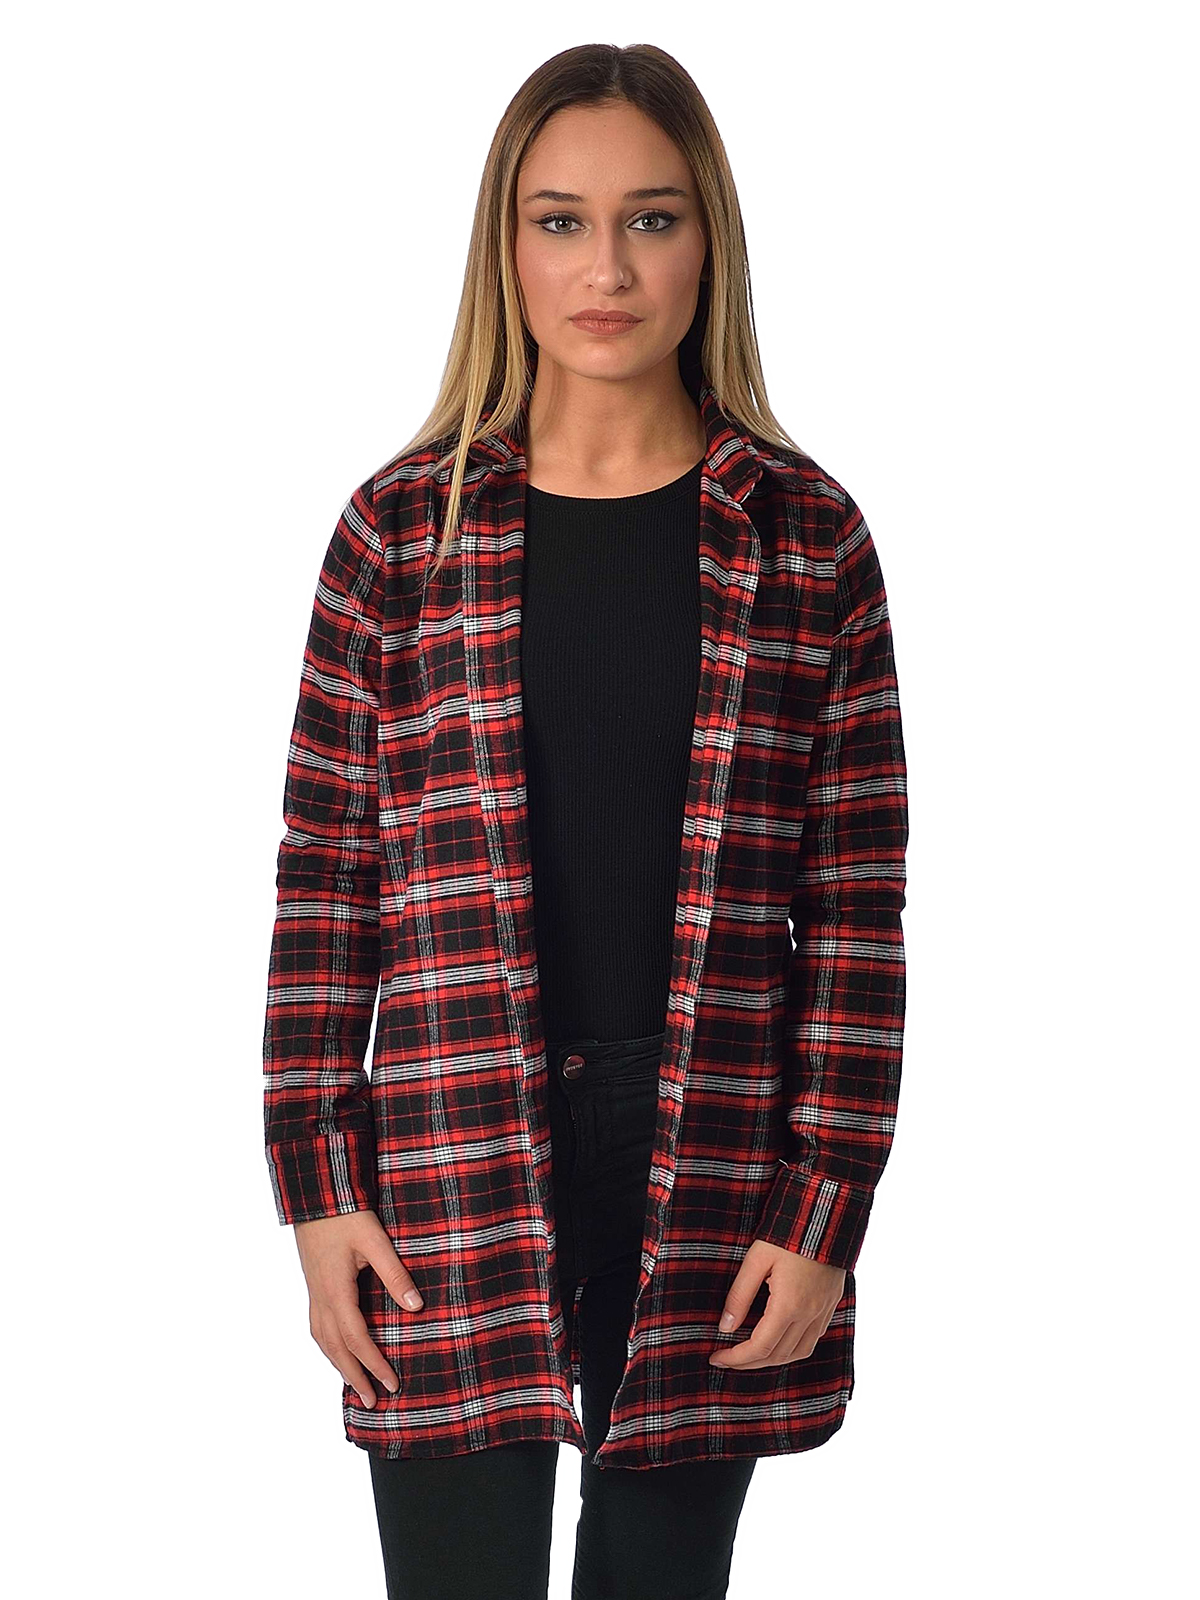 Black Pants Red Shirt Women With Brilliant Picture: womens red tartan plaid shirt